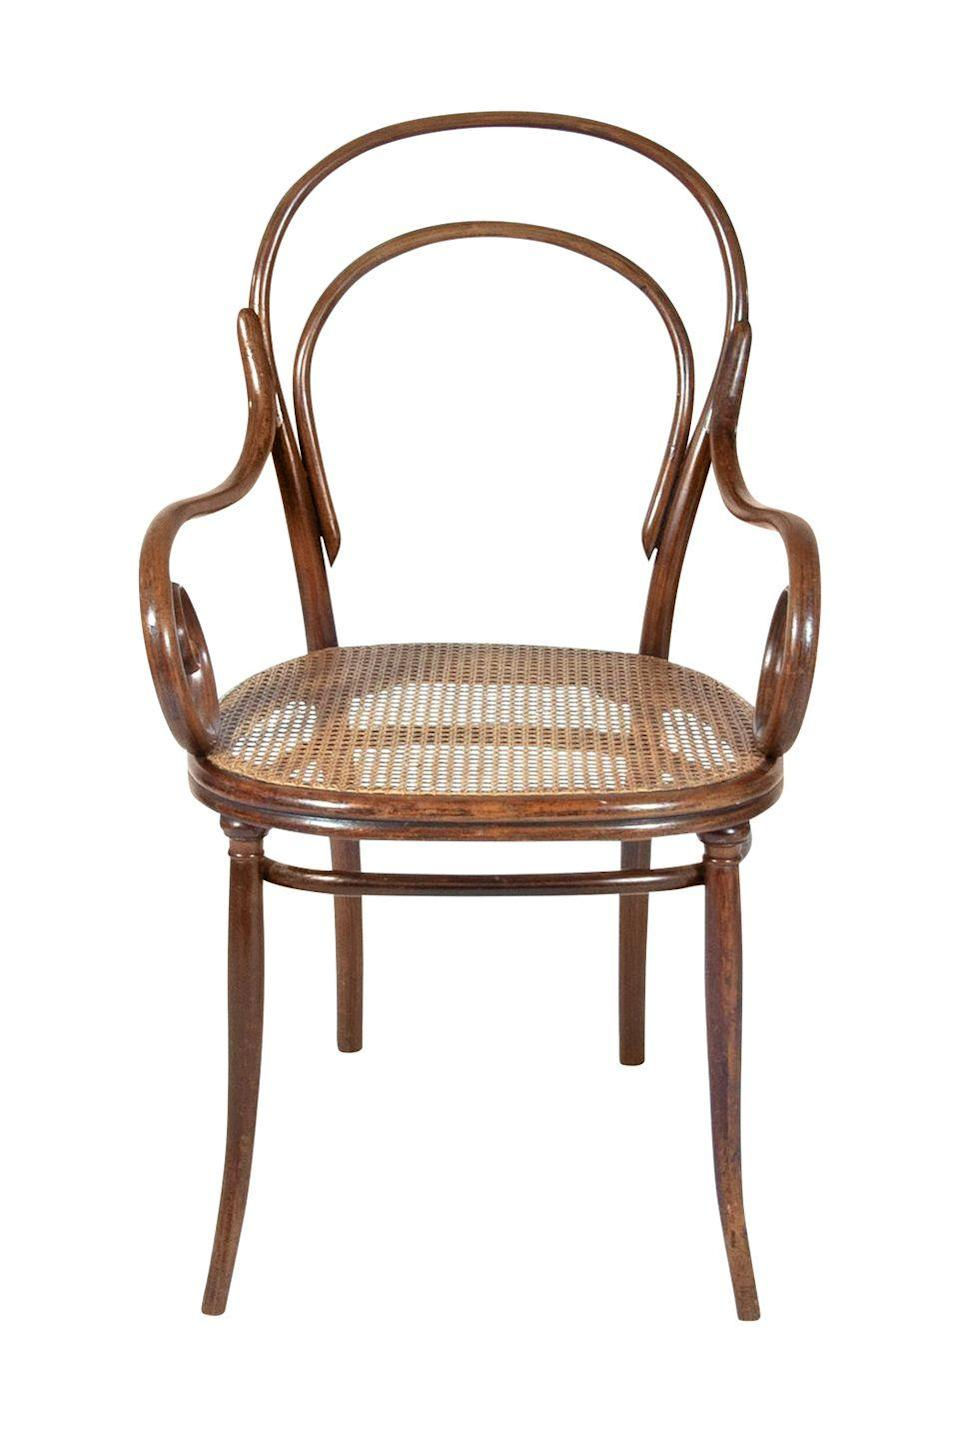 <p><strong>What it was worth (1985): </strong>$350</p><p><strong>What it's worth now:</strong> $500</p><p>This style of furniture was invented by Michael Thonet, a furniture maker born way back in 1796.</p>